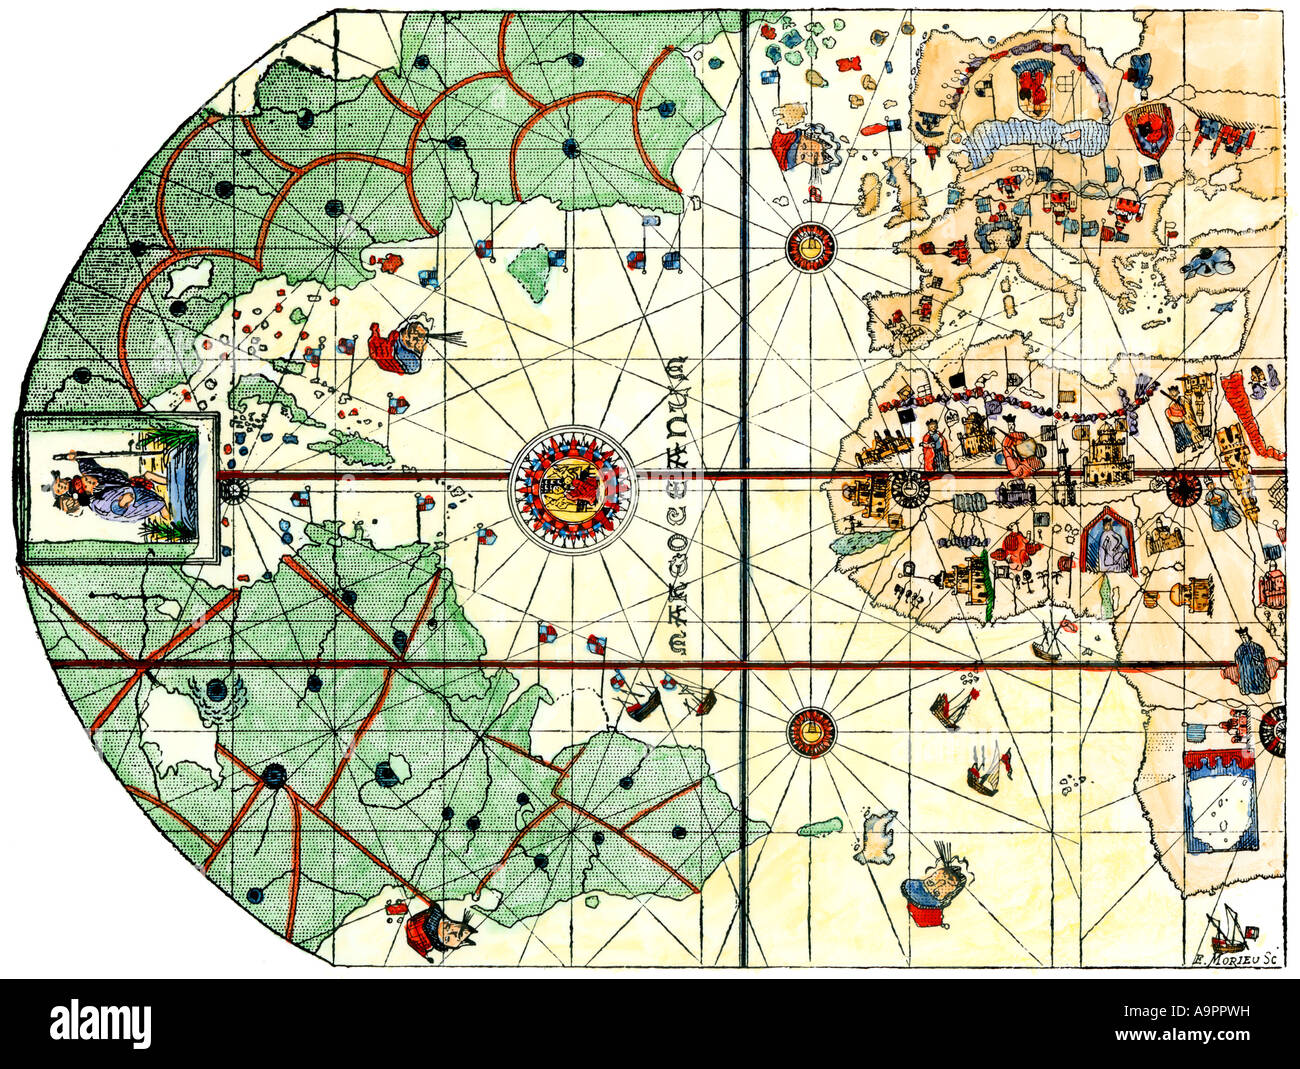 Map Of World 1500 Stock Photos & Map Of World 1500 Stock Images - Alamy